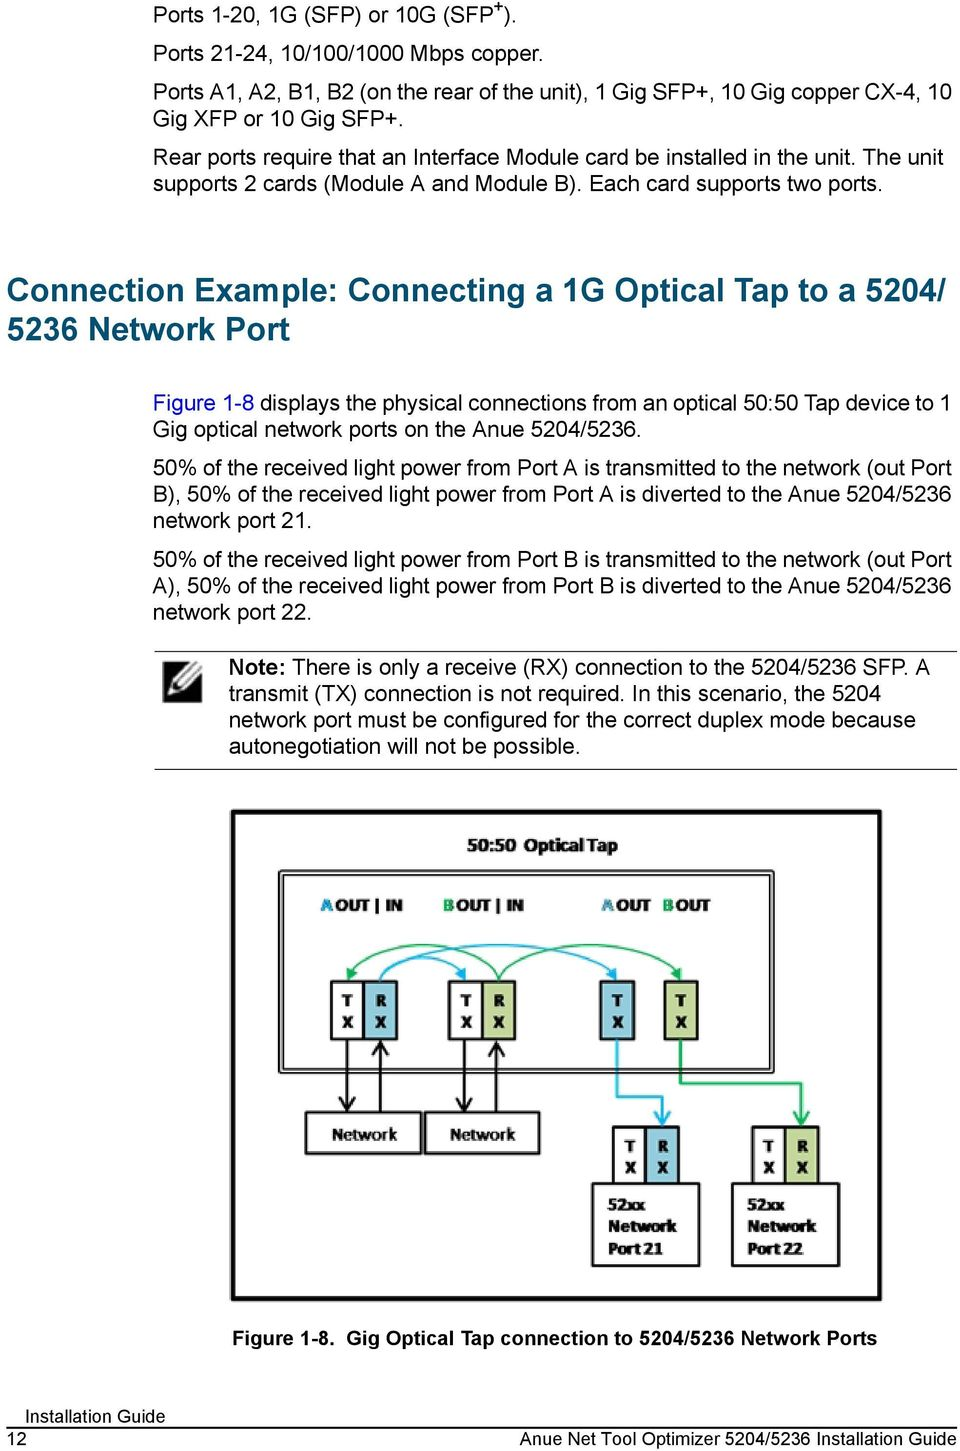 Connection Example: Connecting a 1G Optical Tap to a 5204/ 5236 Network Port Figure 1-8 displays the physical connections from an optical 50:50 Tap device to 1 Gig optical network ports on the Anue